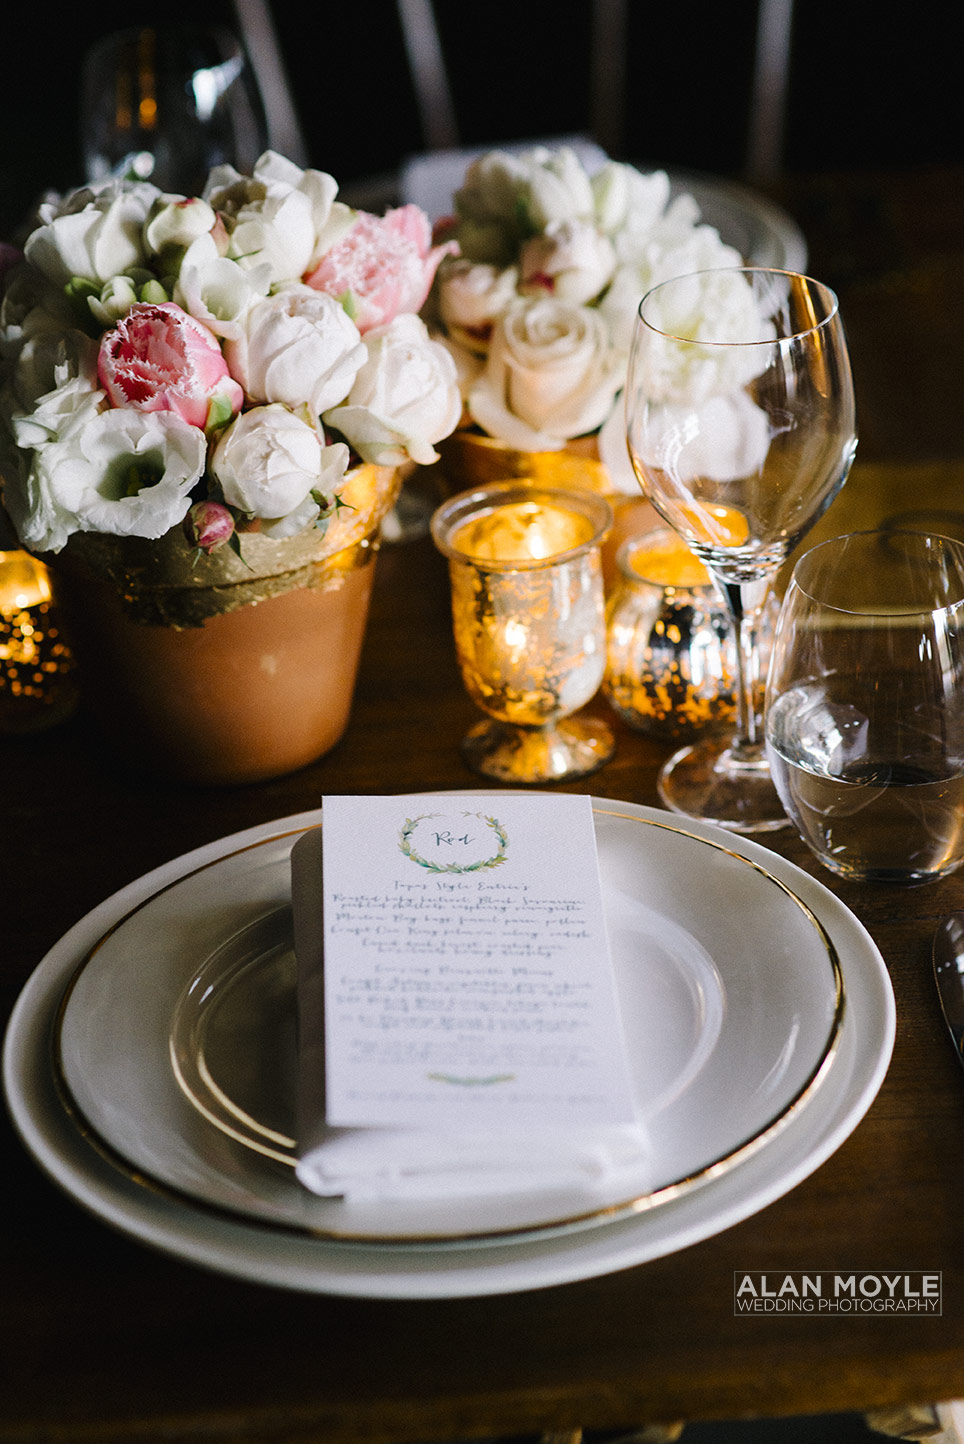 1405austin-277weddings_of_desire_melbourne_styling_event_geelong_alan_moyle_vineyard_winery_caligraphy_laura_sprout_hire_bayside.jpg